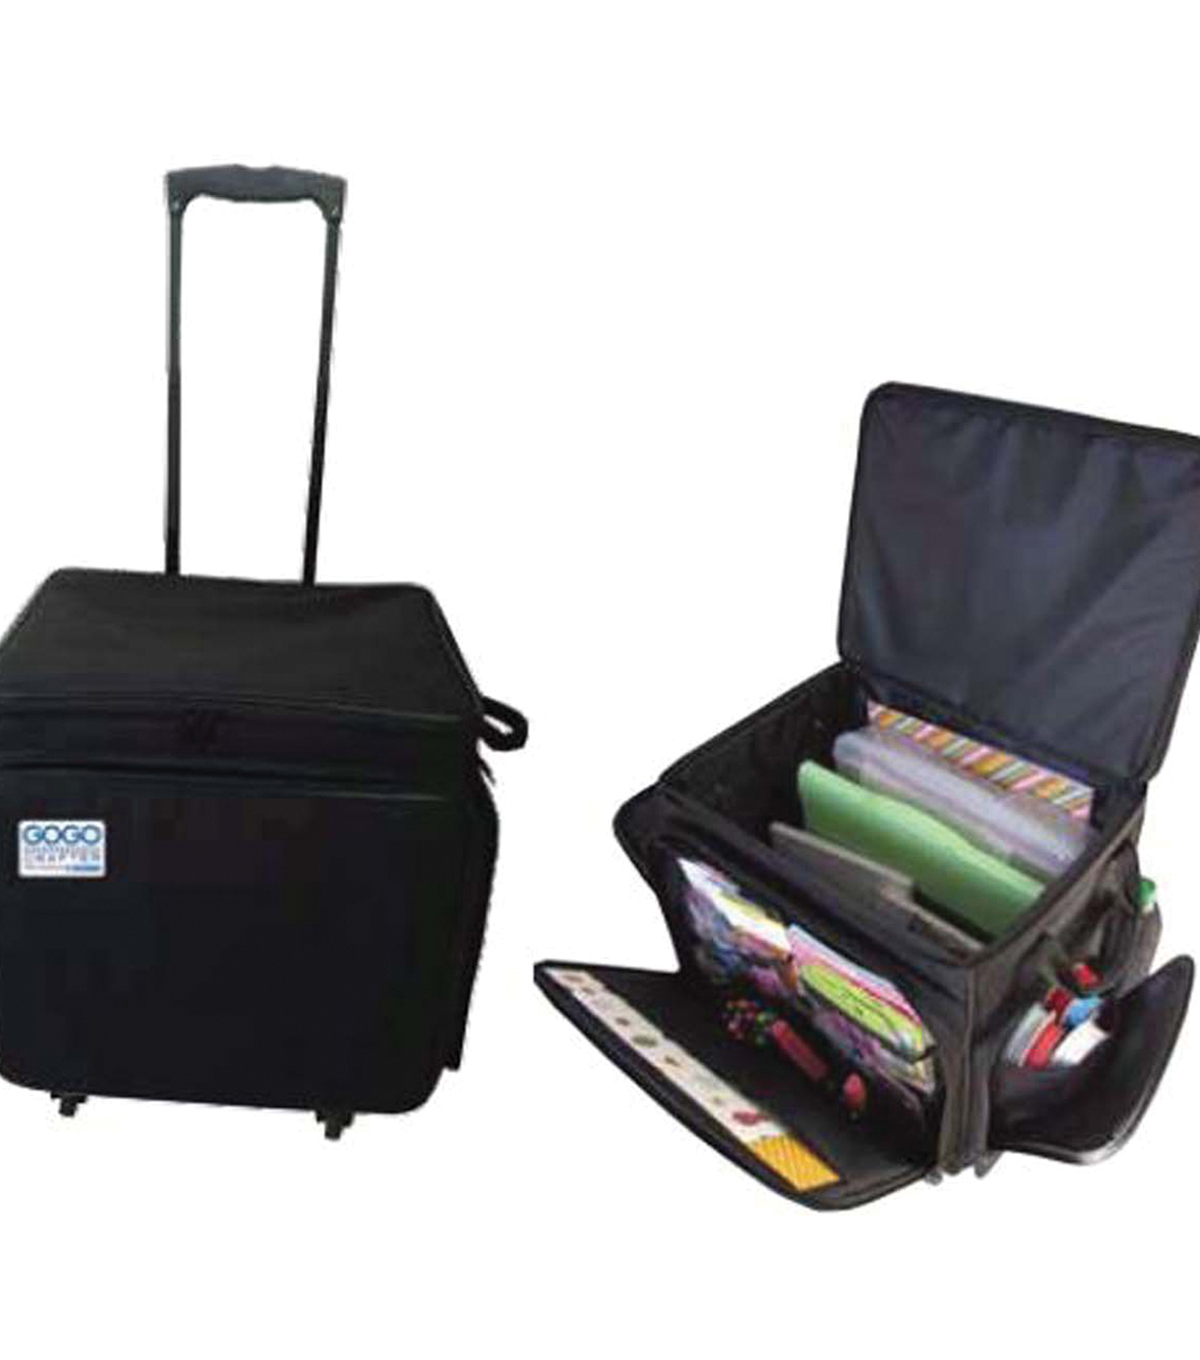 Gogo 300 Crafter Rolling Tote 20 X17 X14 Black